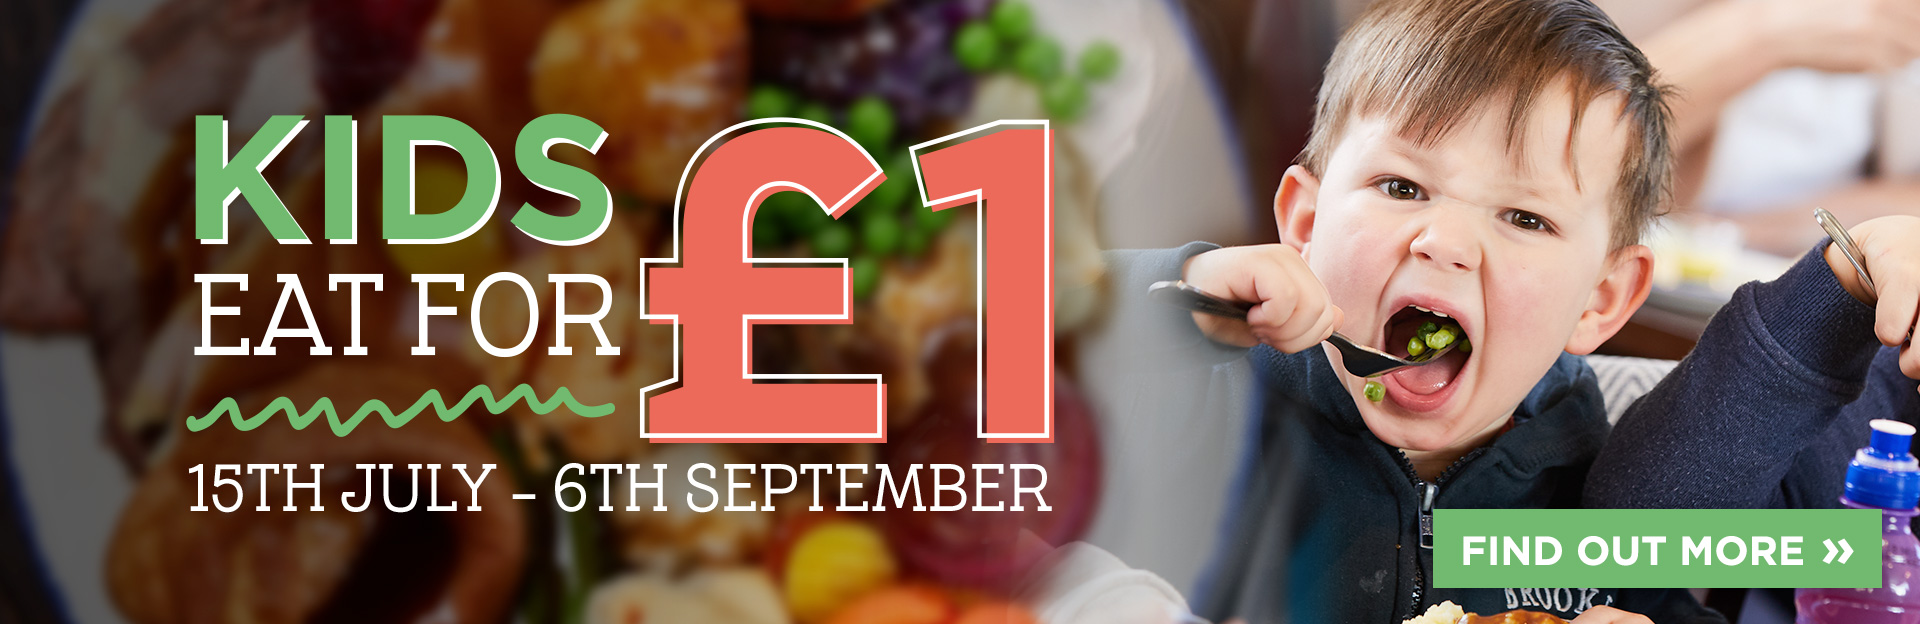 Kids Eat for £1 at The Greenhills